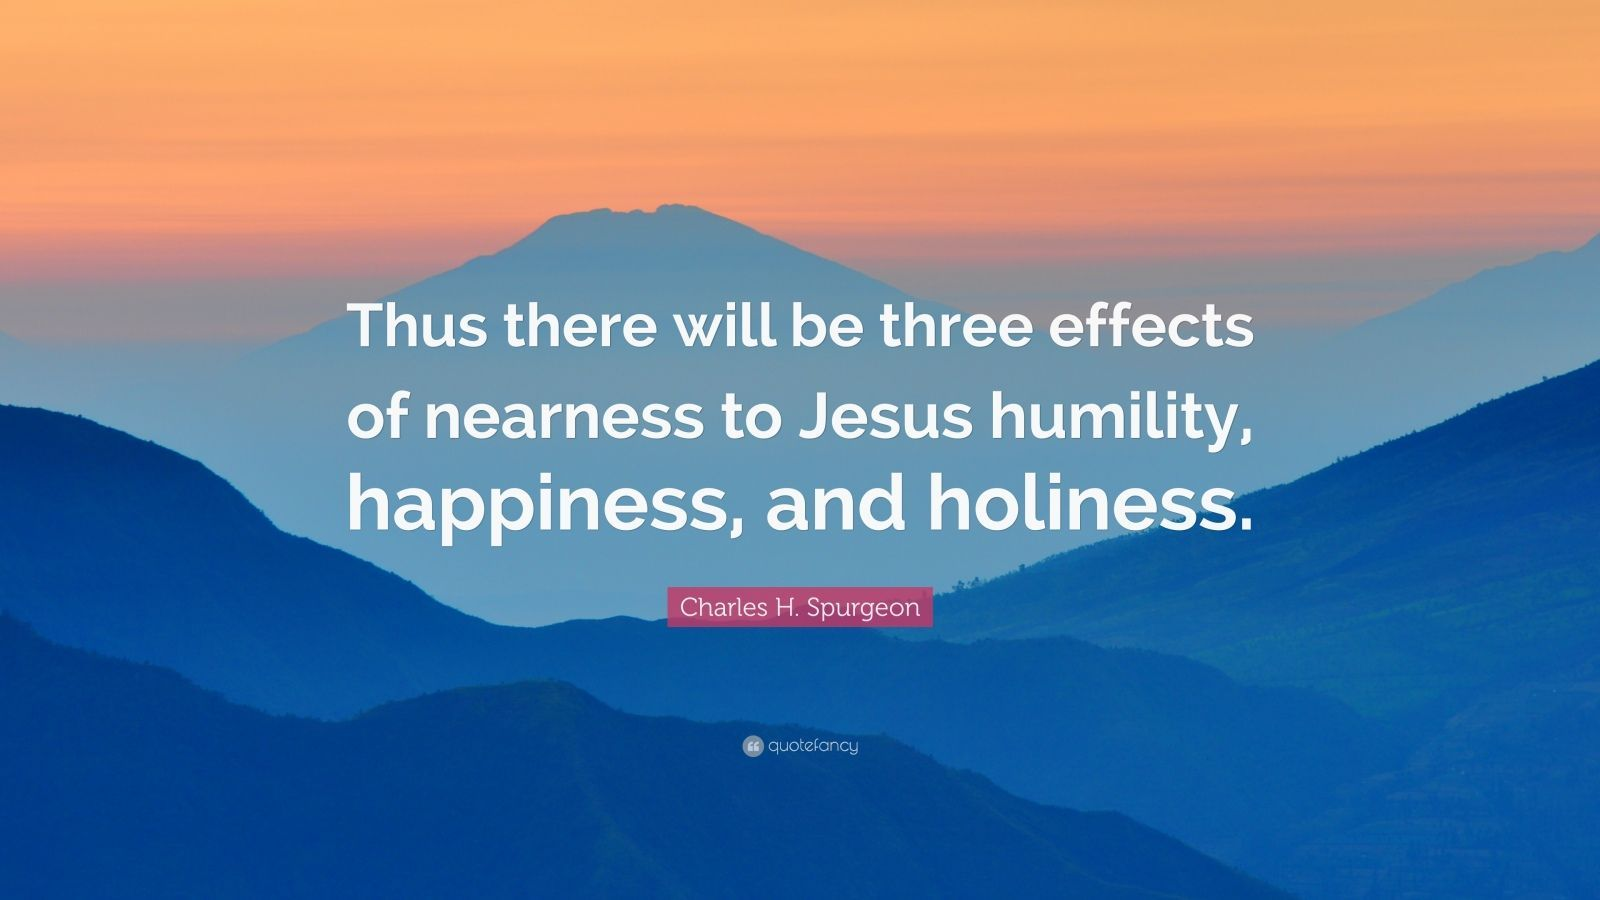 Charles H Spurgeon Quote Thus There Will Be Three